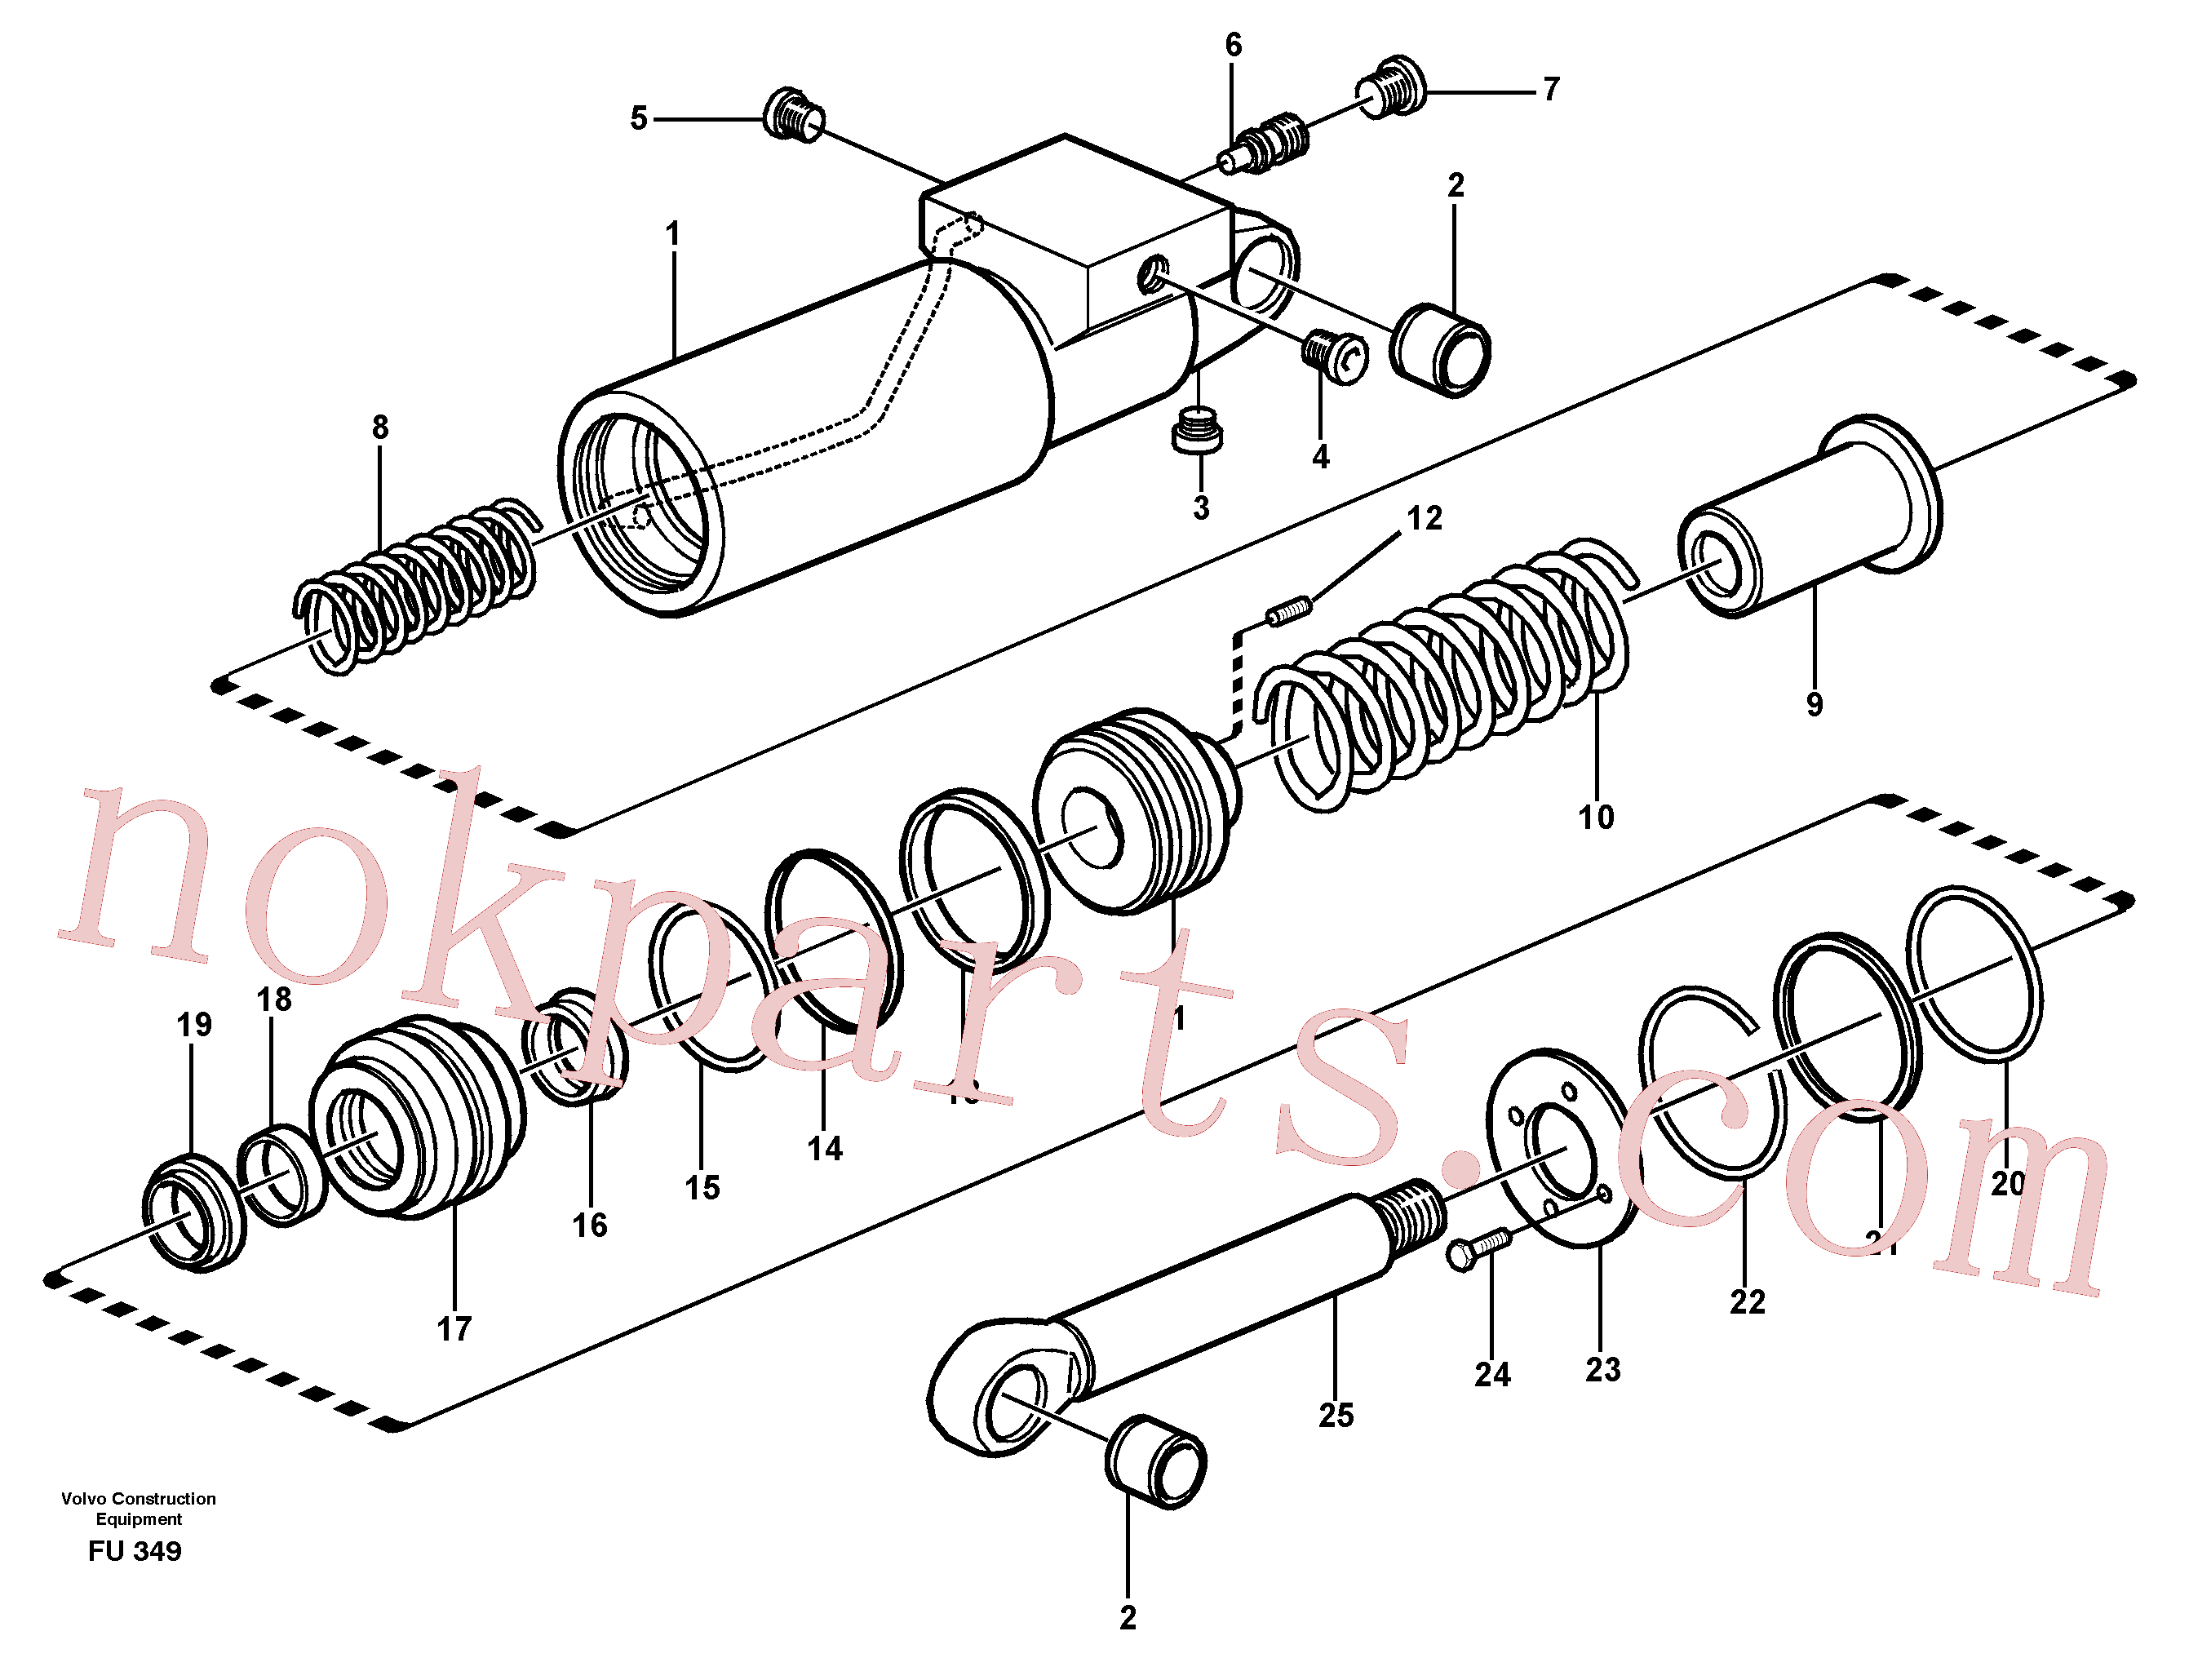 SA9512-02228 for Volvo Hydraulic cylinder(FU349 assembly)